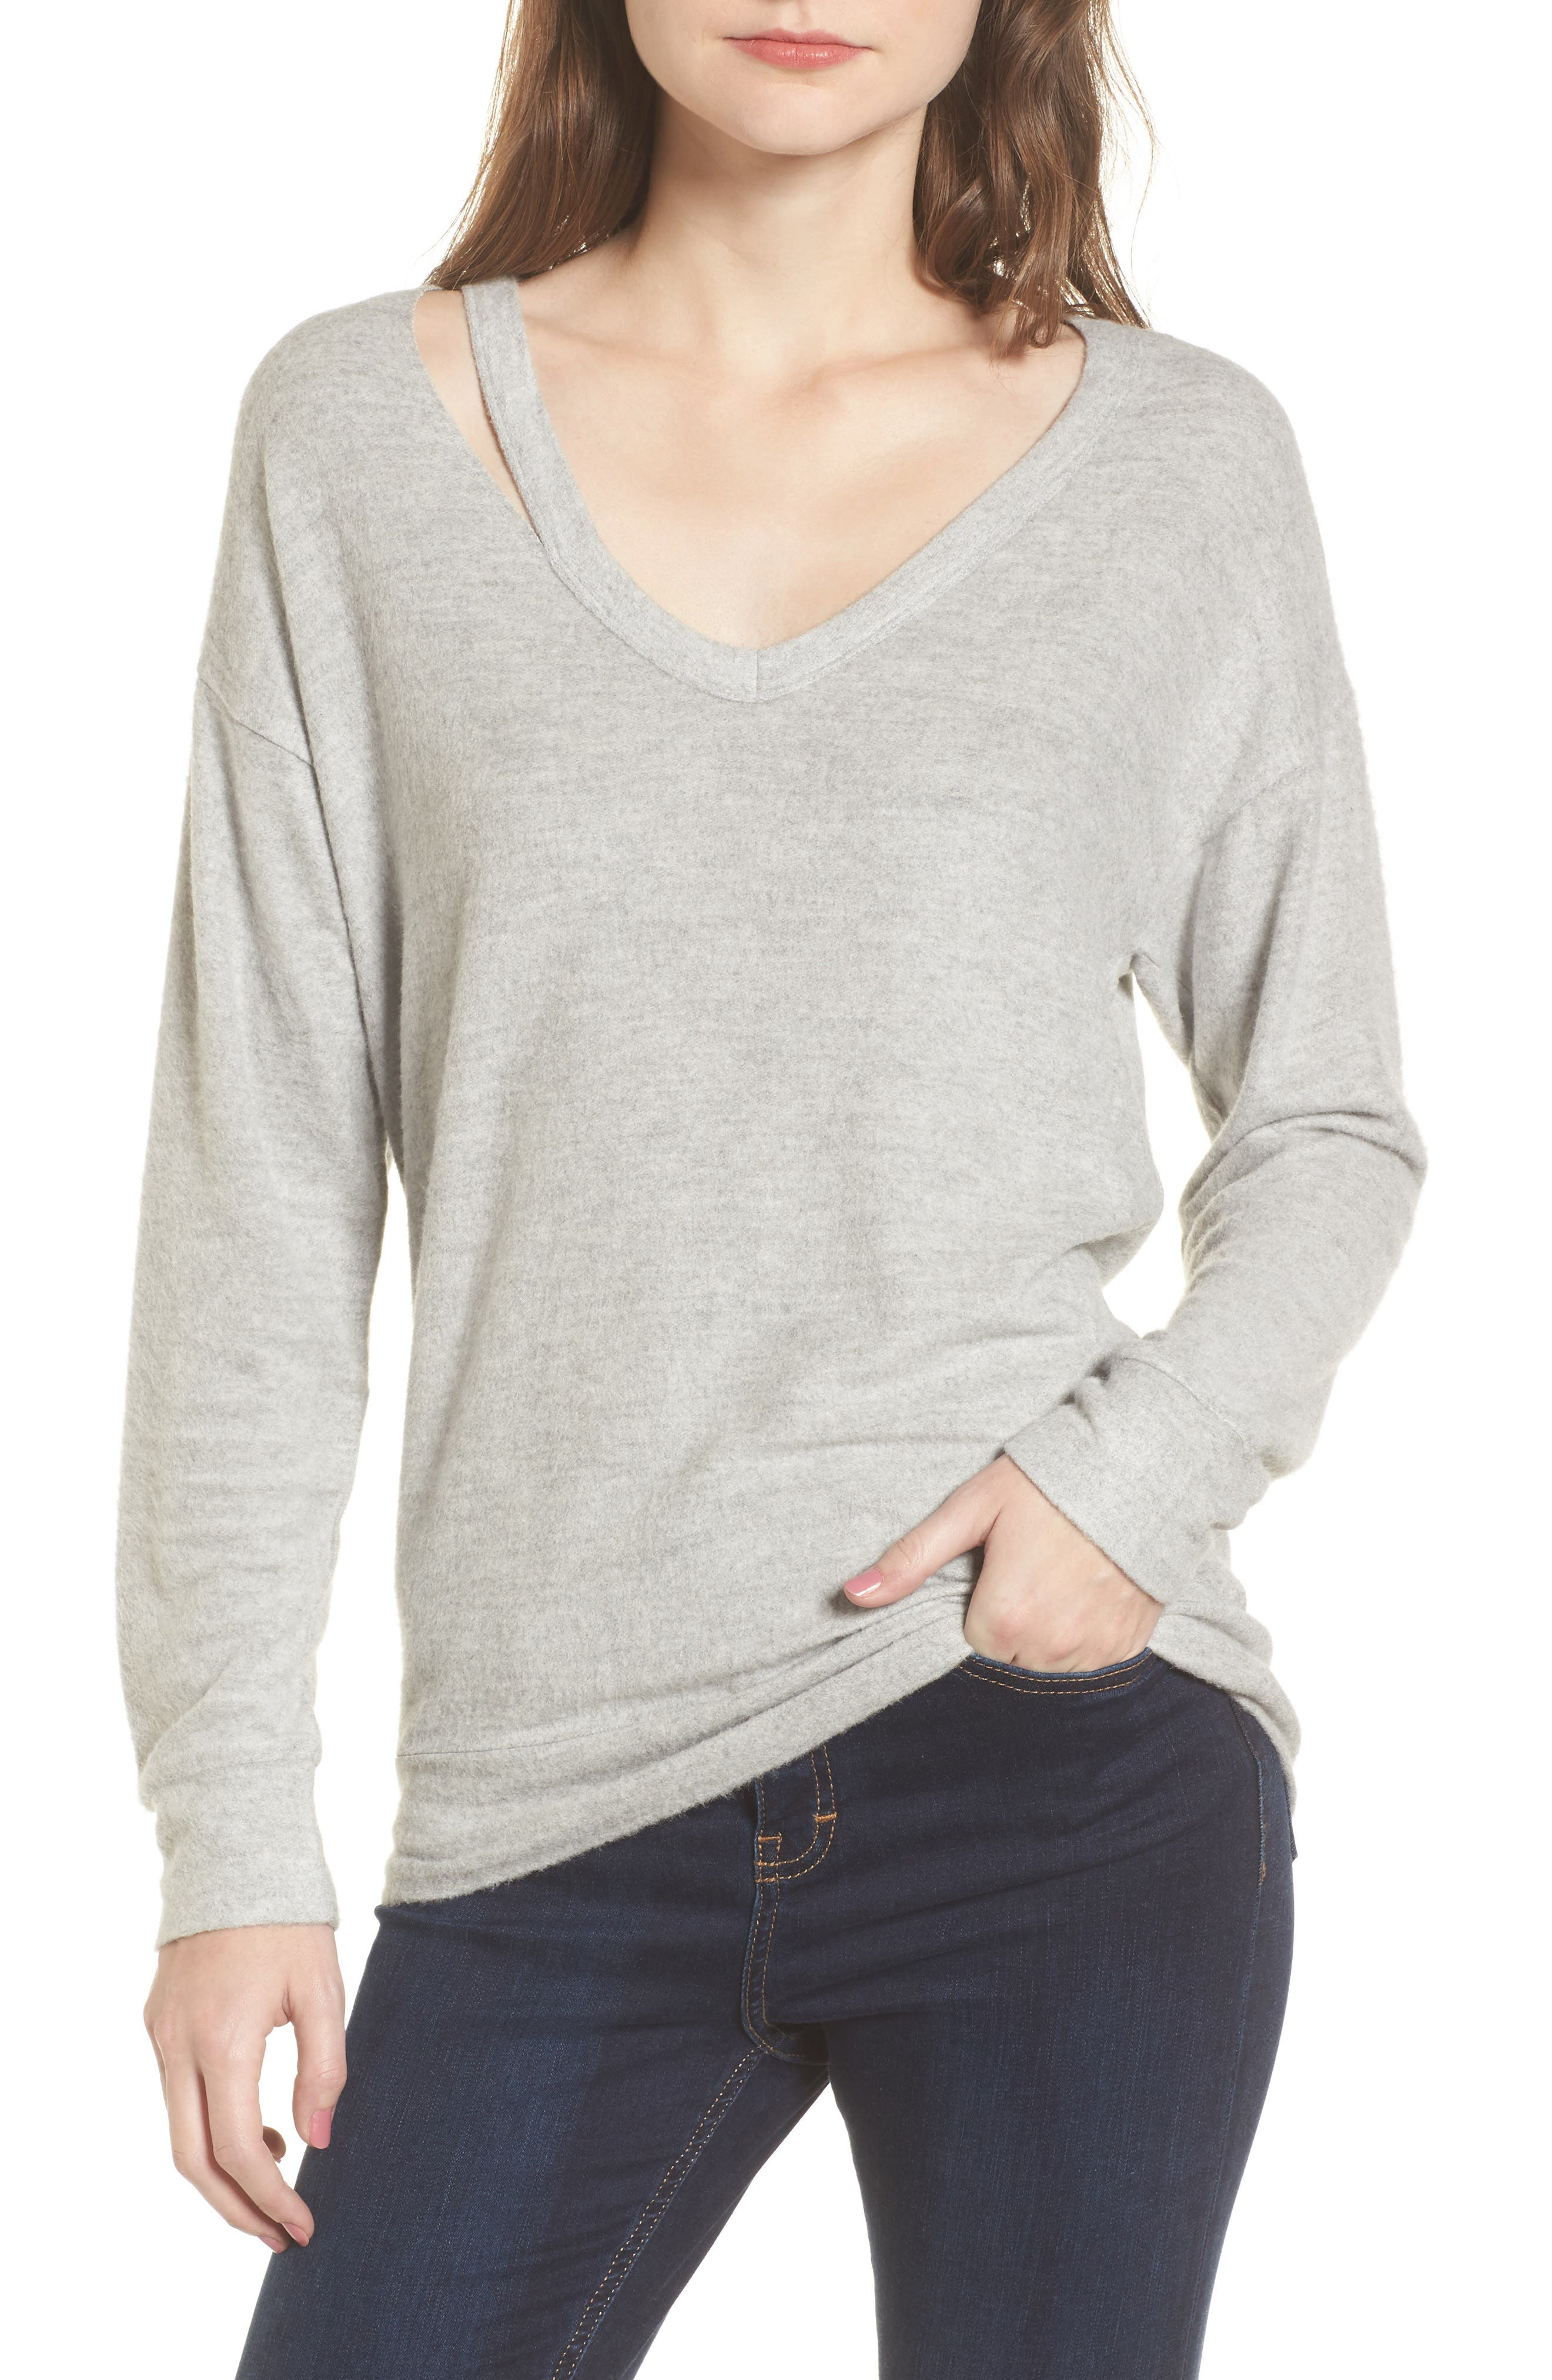 Socialite Split V-neck Sweater